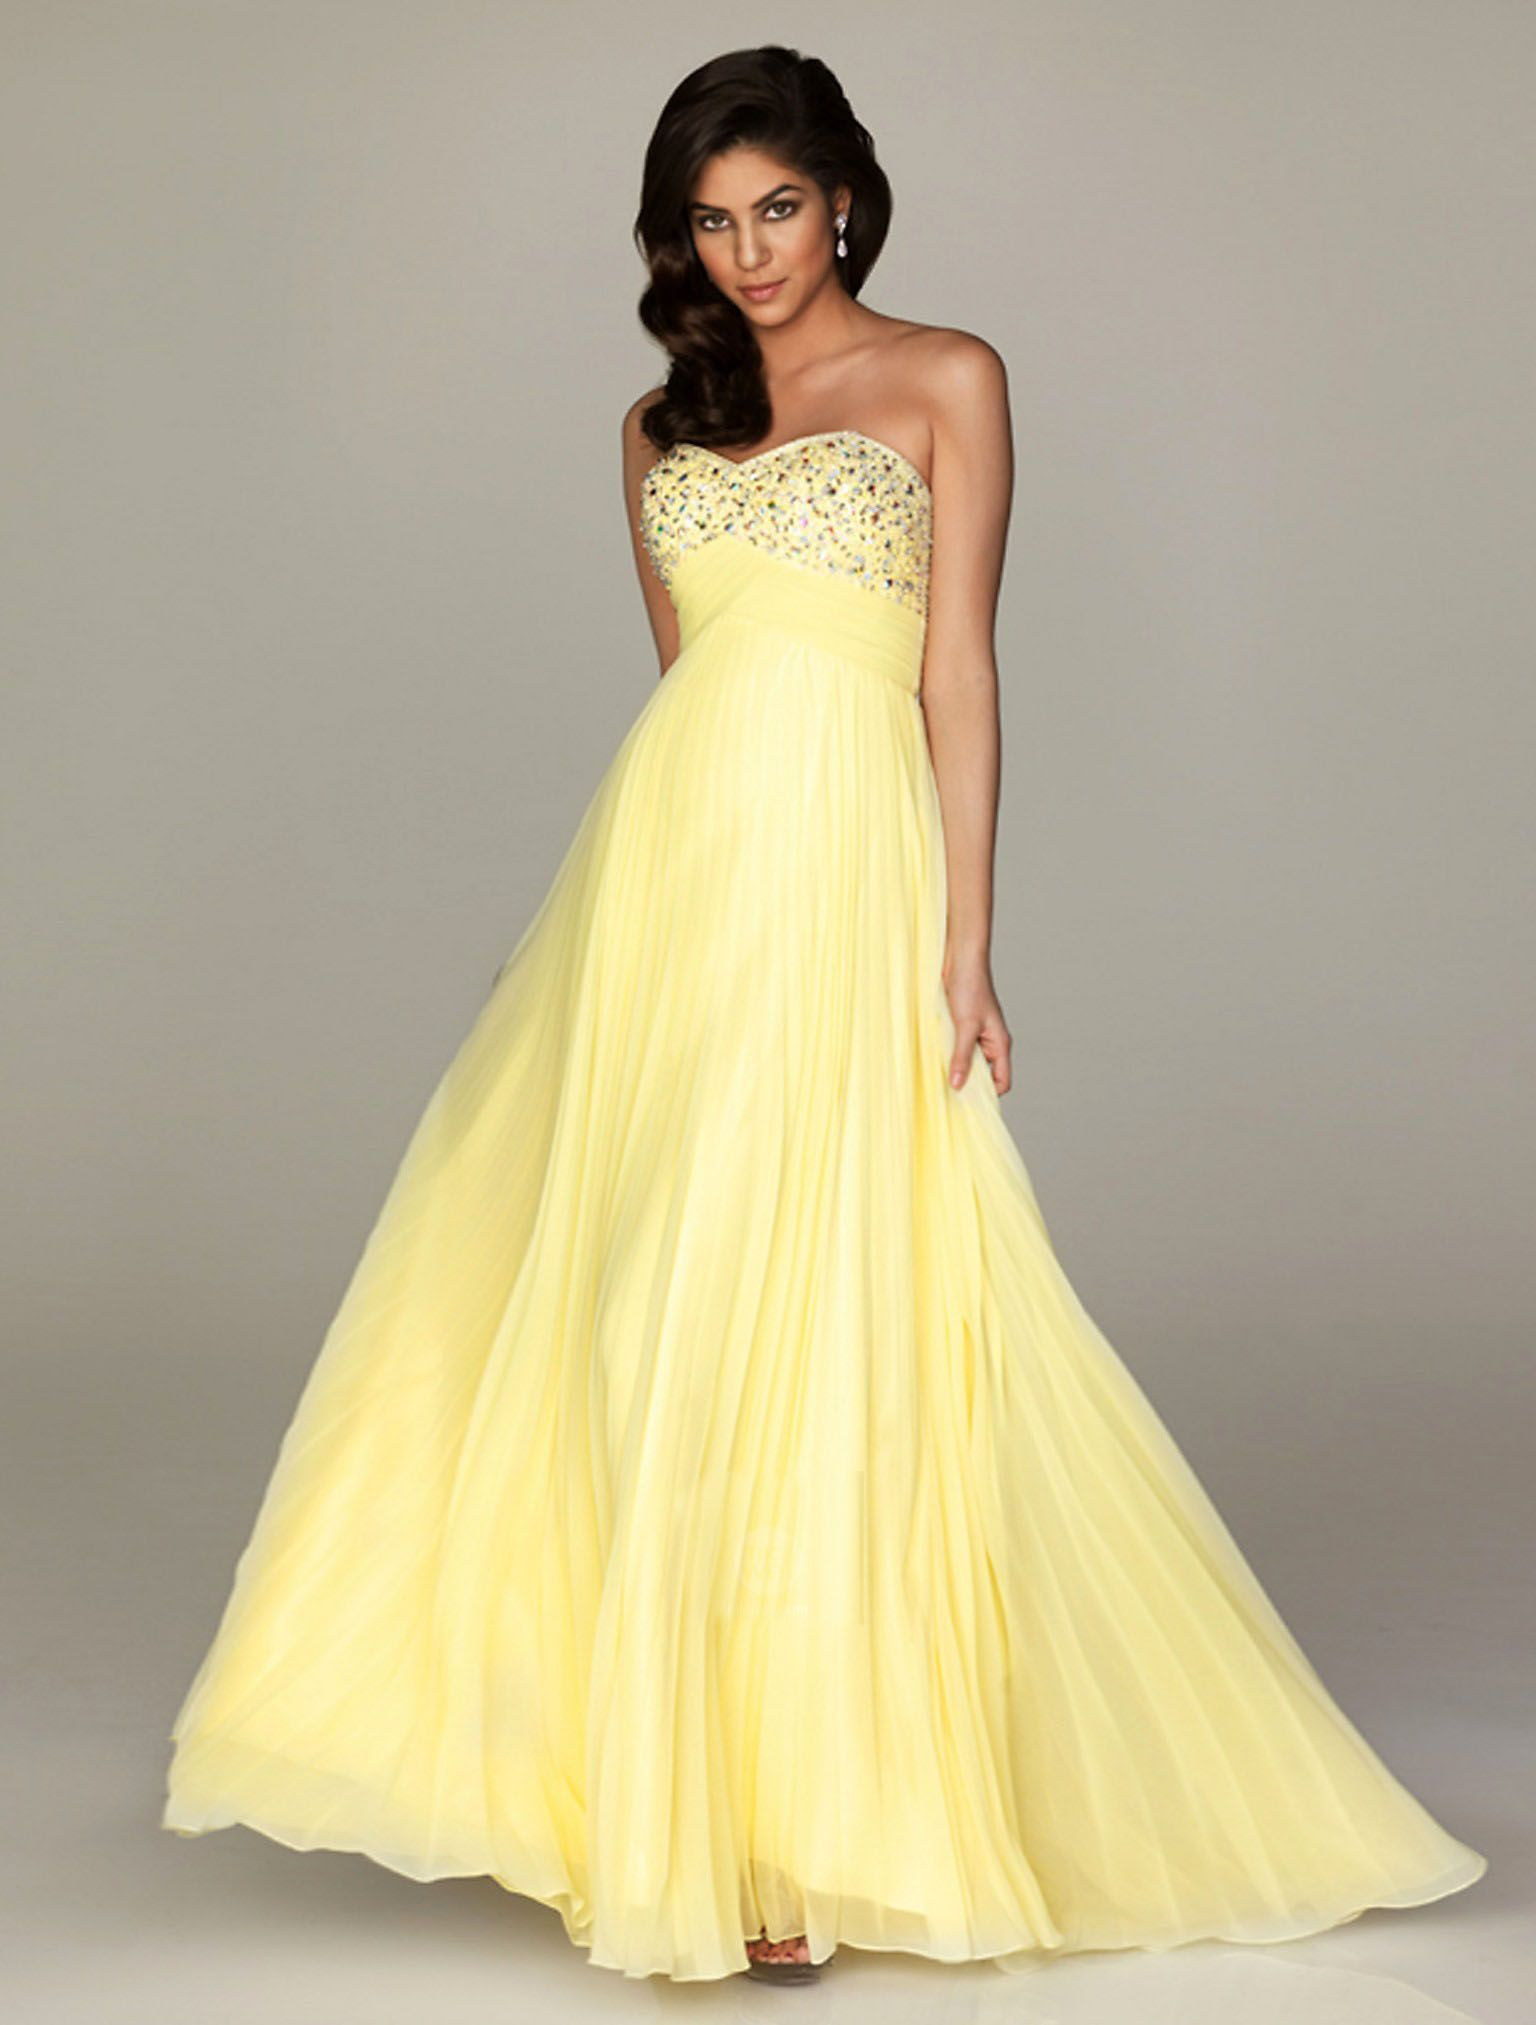 Start out searching for your perfect long maxi strapless light